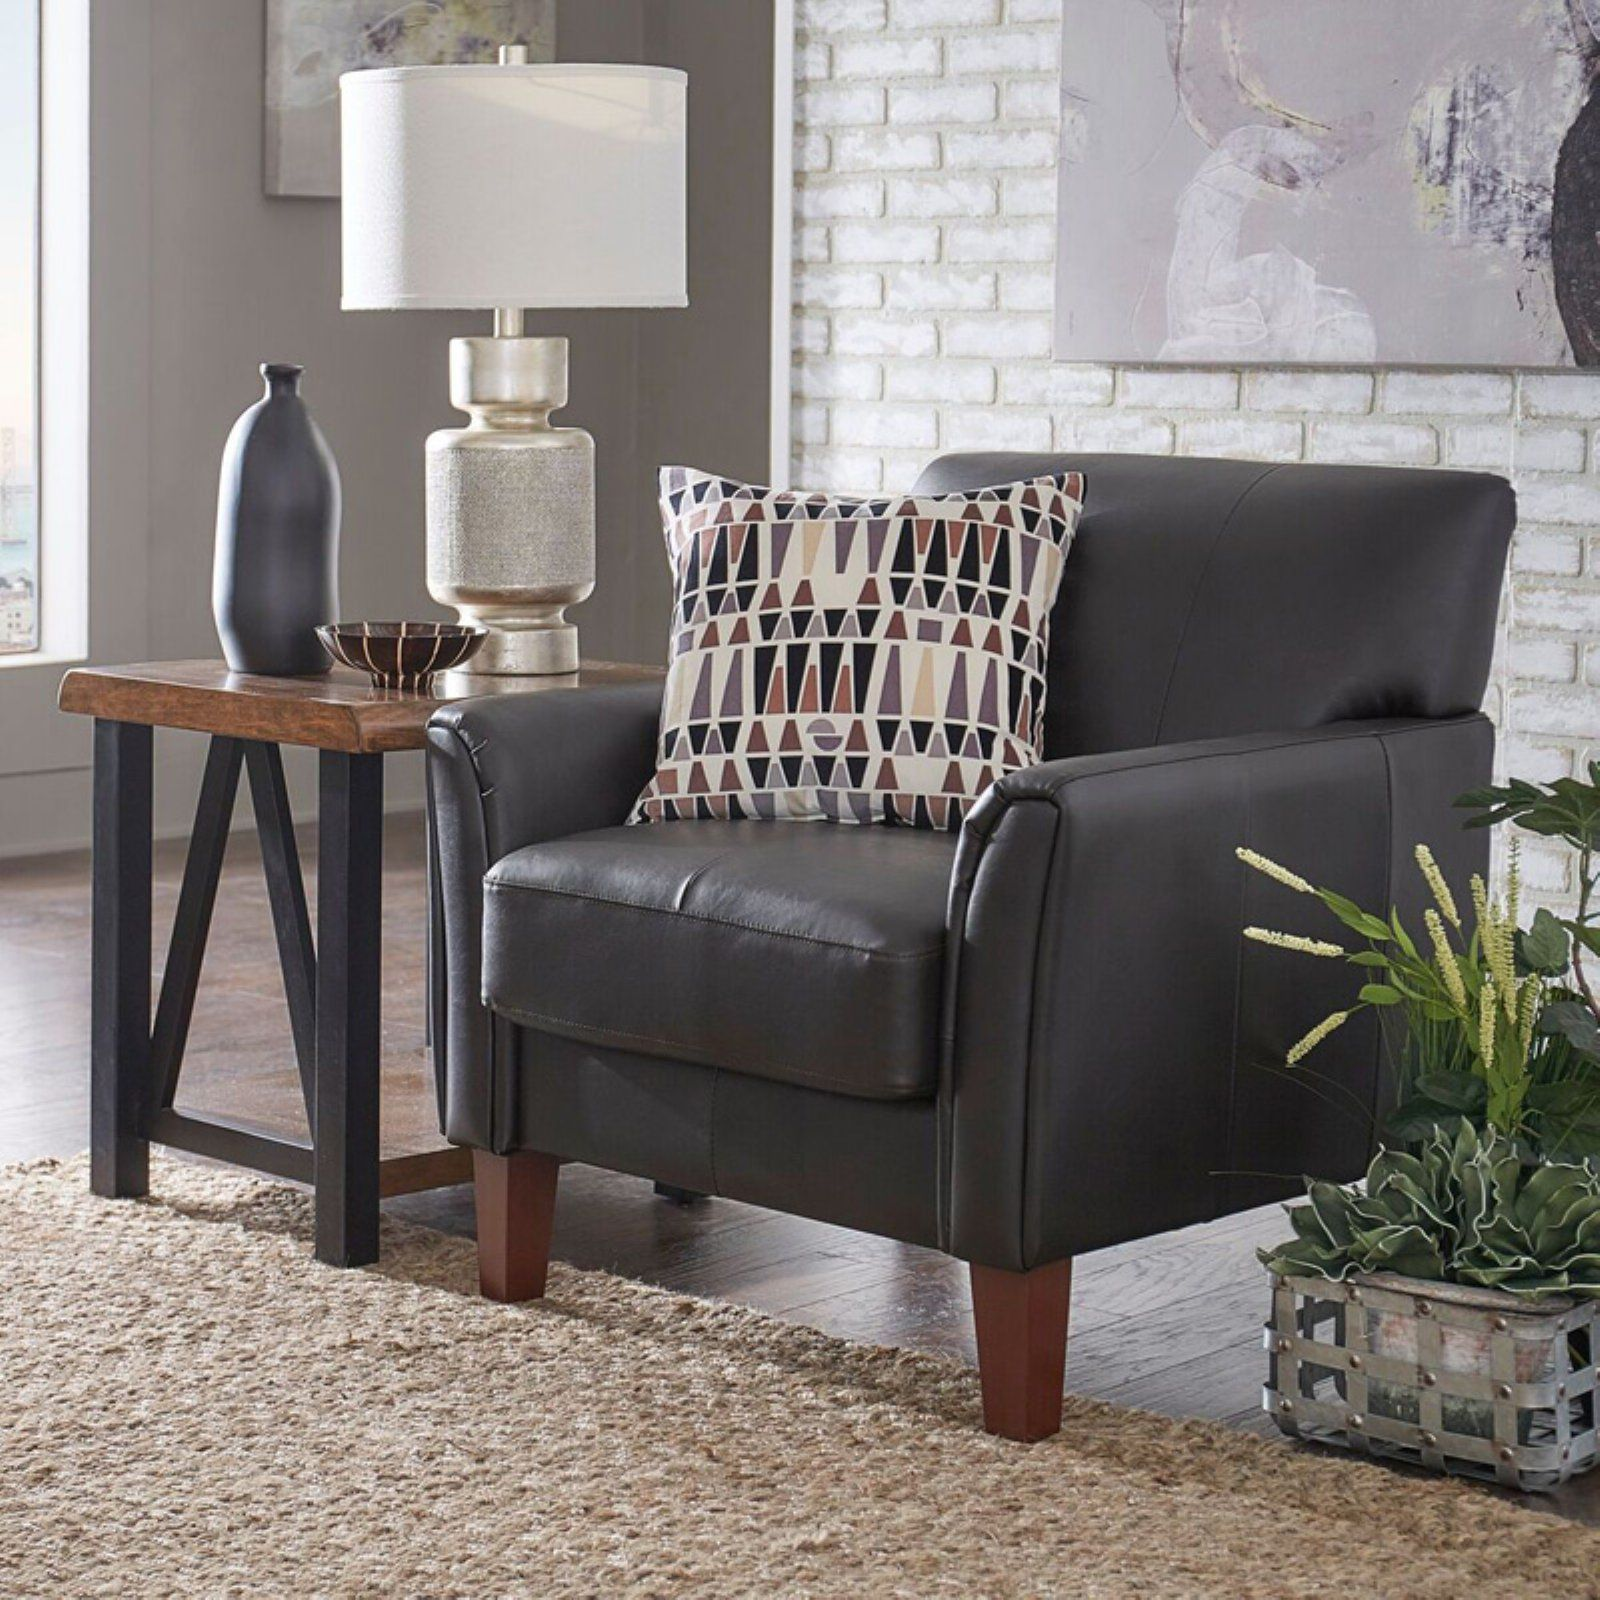 Weston Home Yorkshire Leather Club Chair  Accent chairs for